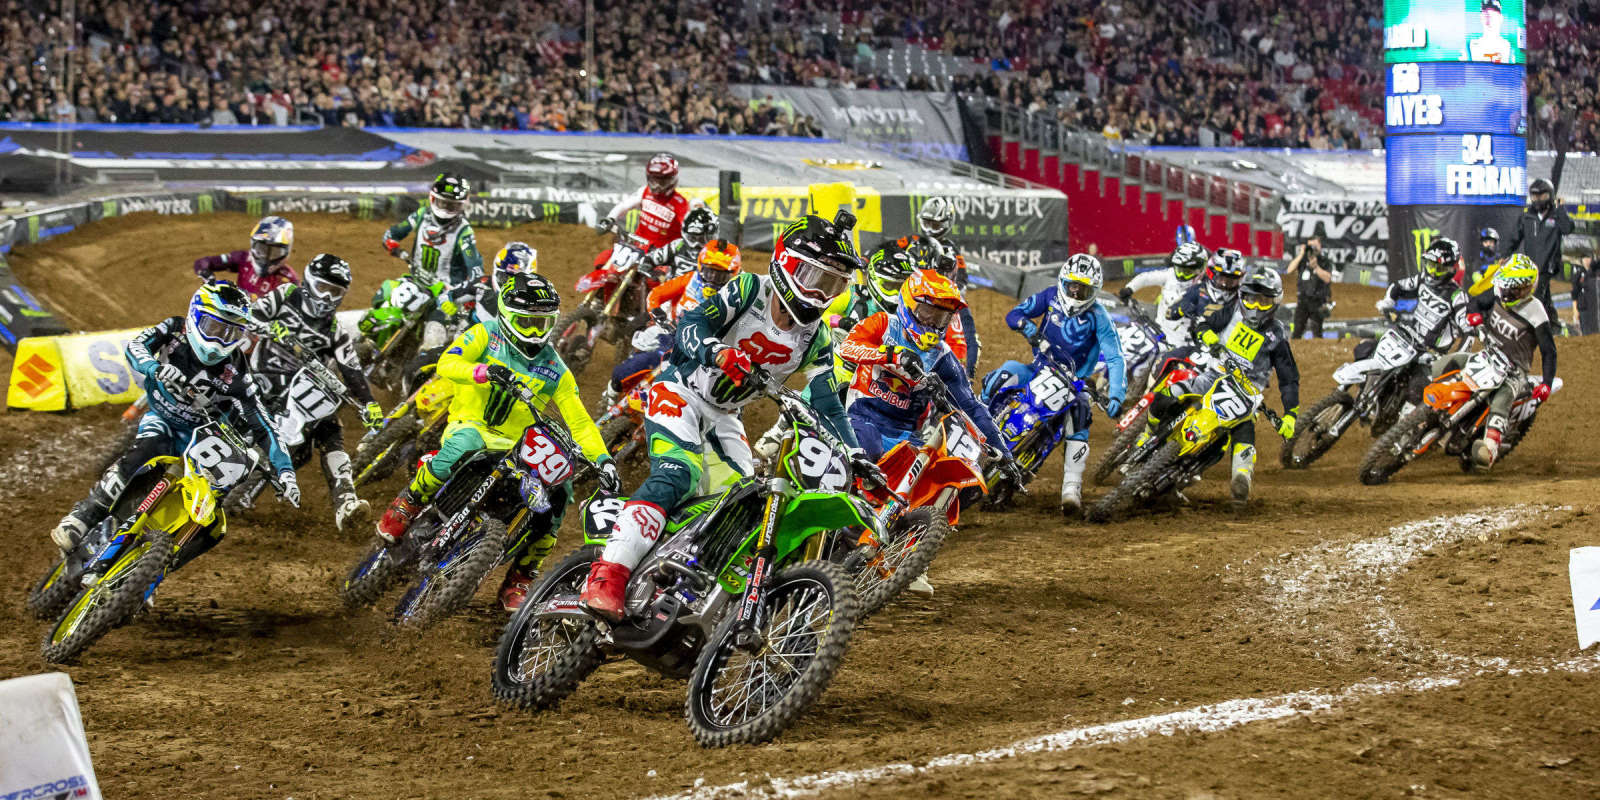 Shots from Supercross event in Glendale, California